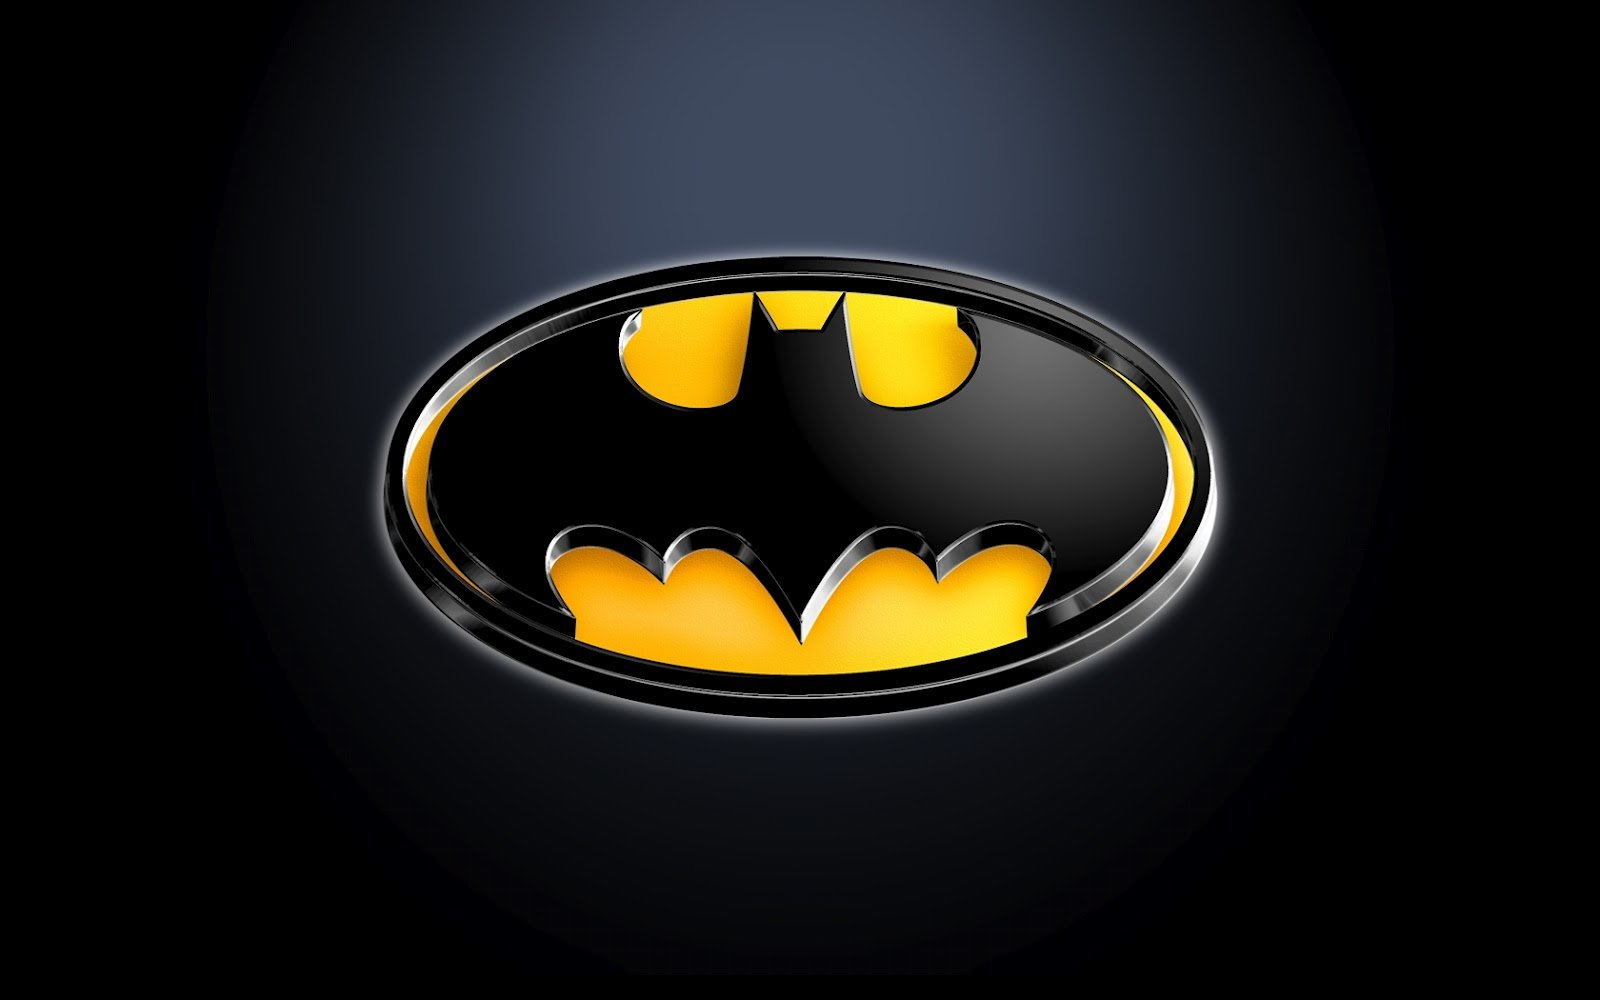 Batman Logo Wallpaper Hd Wallpapersafari